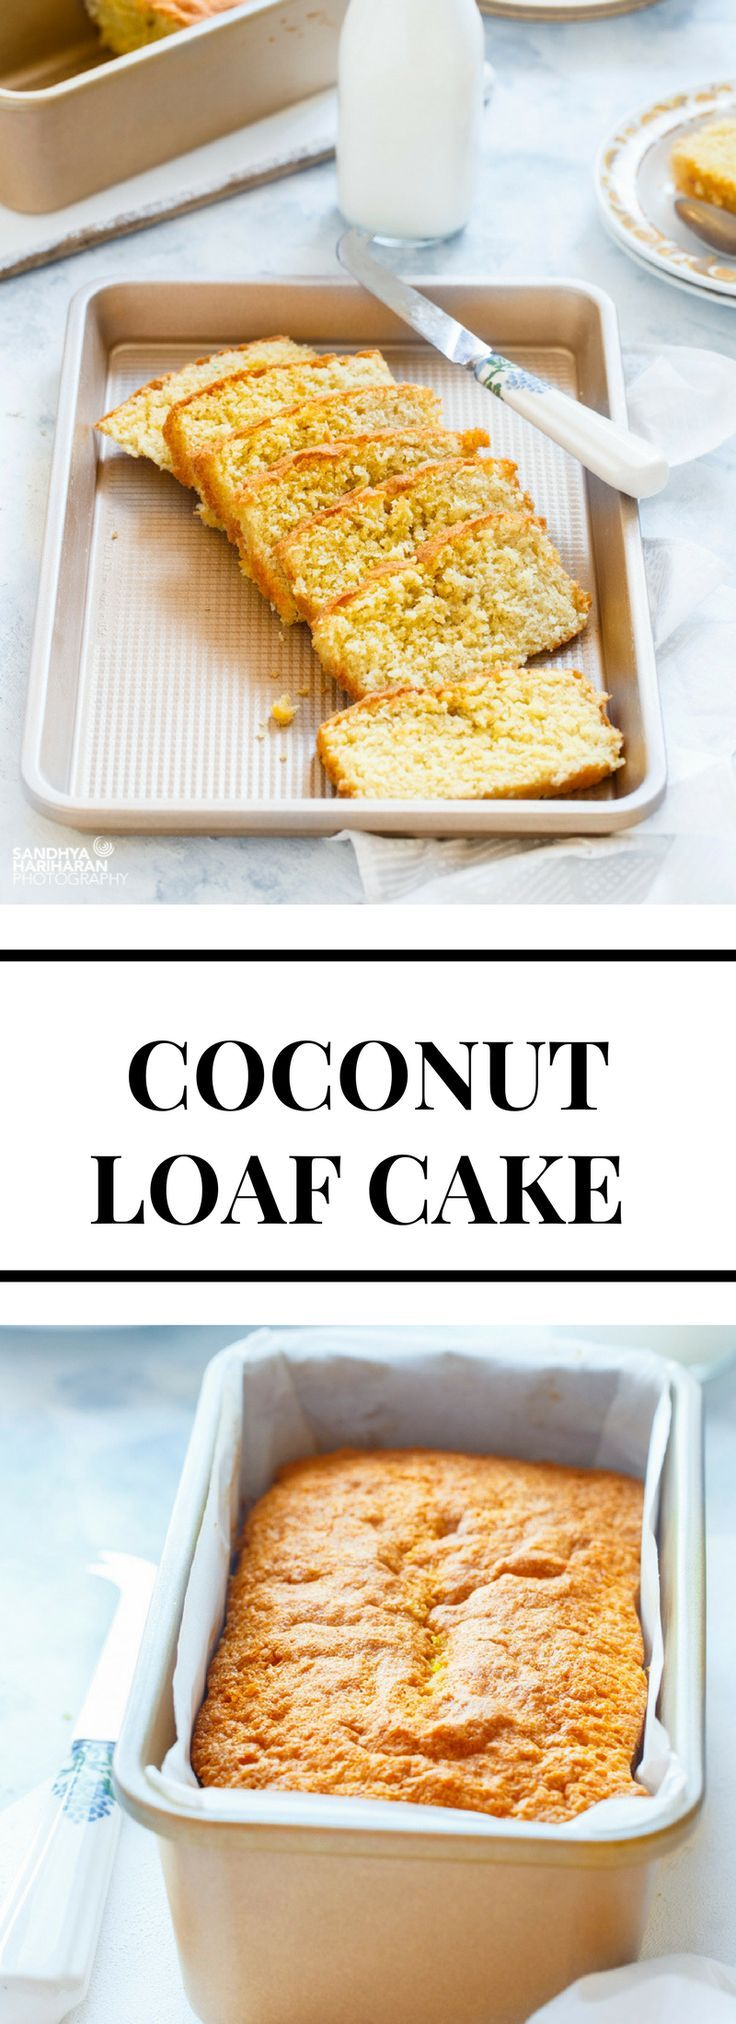 Some breakfast mornings just call for Simple COCONUT LOAF CAKE along with a cuppa.   Its Coconut - ty, light and very mildly flavoured!